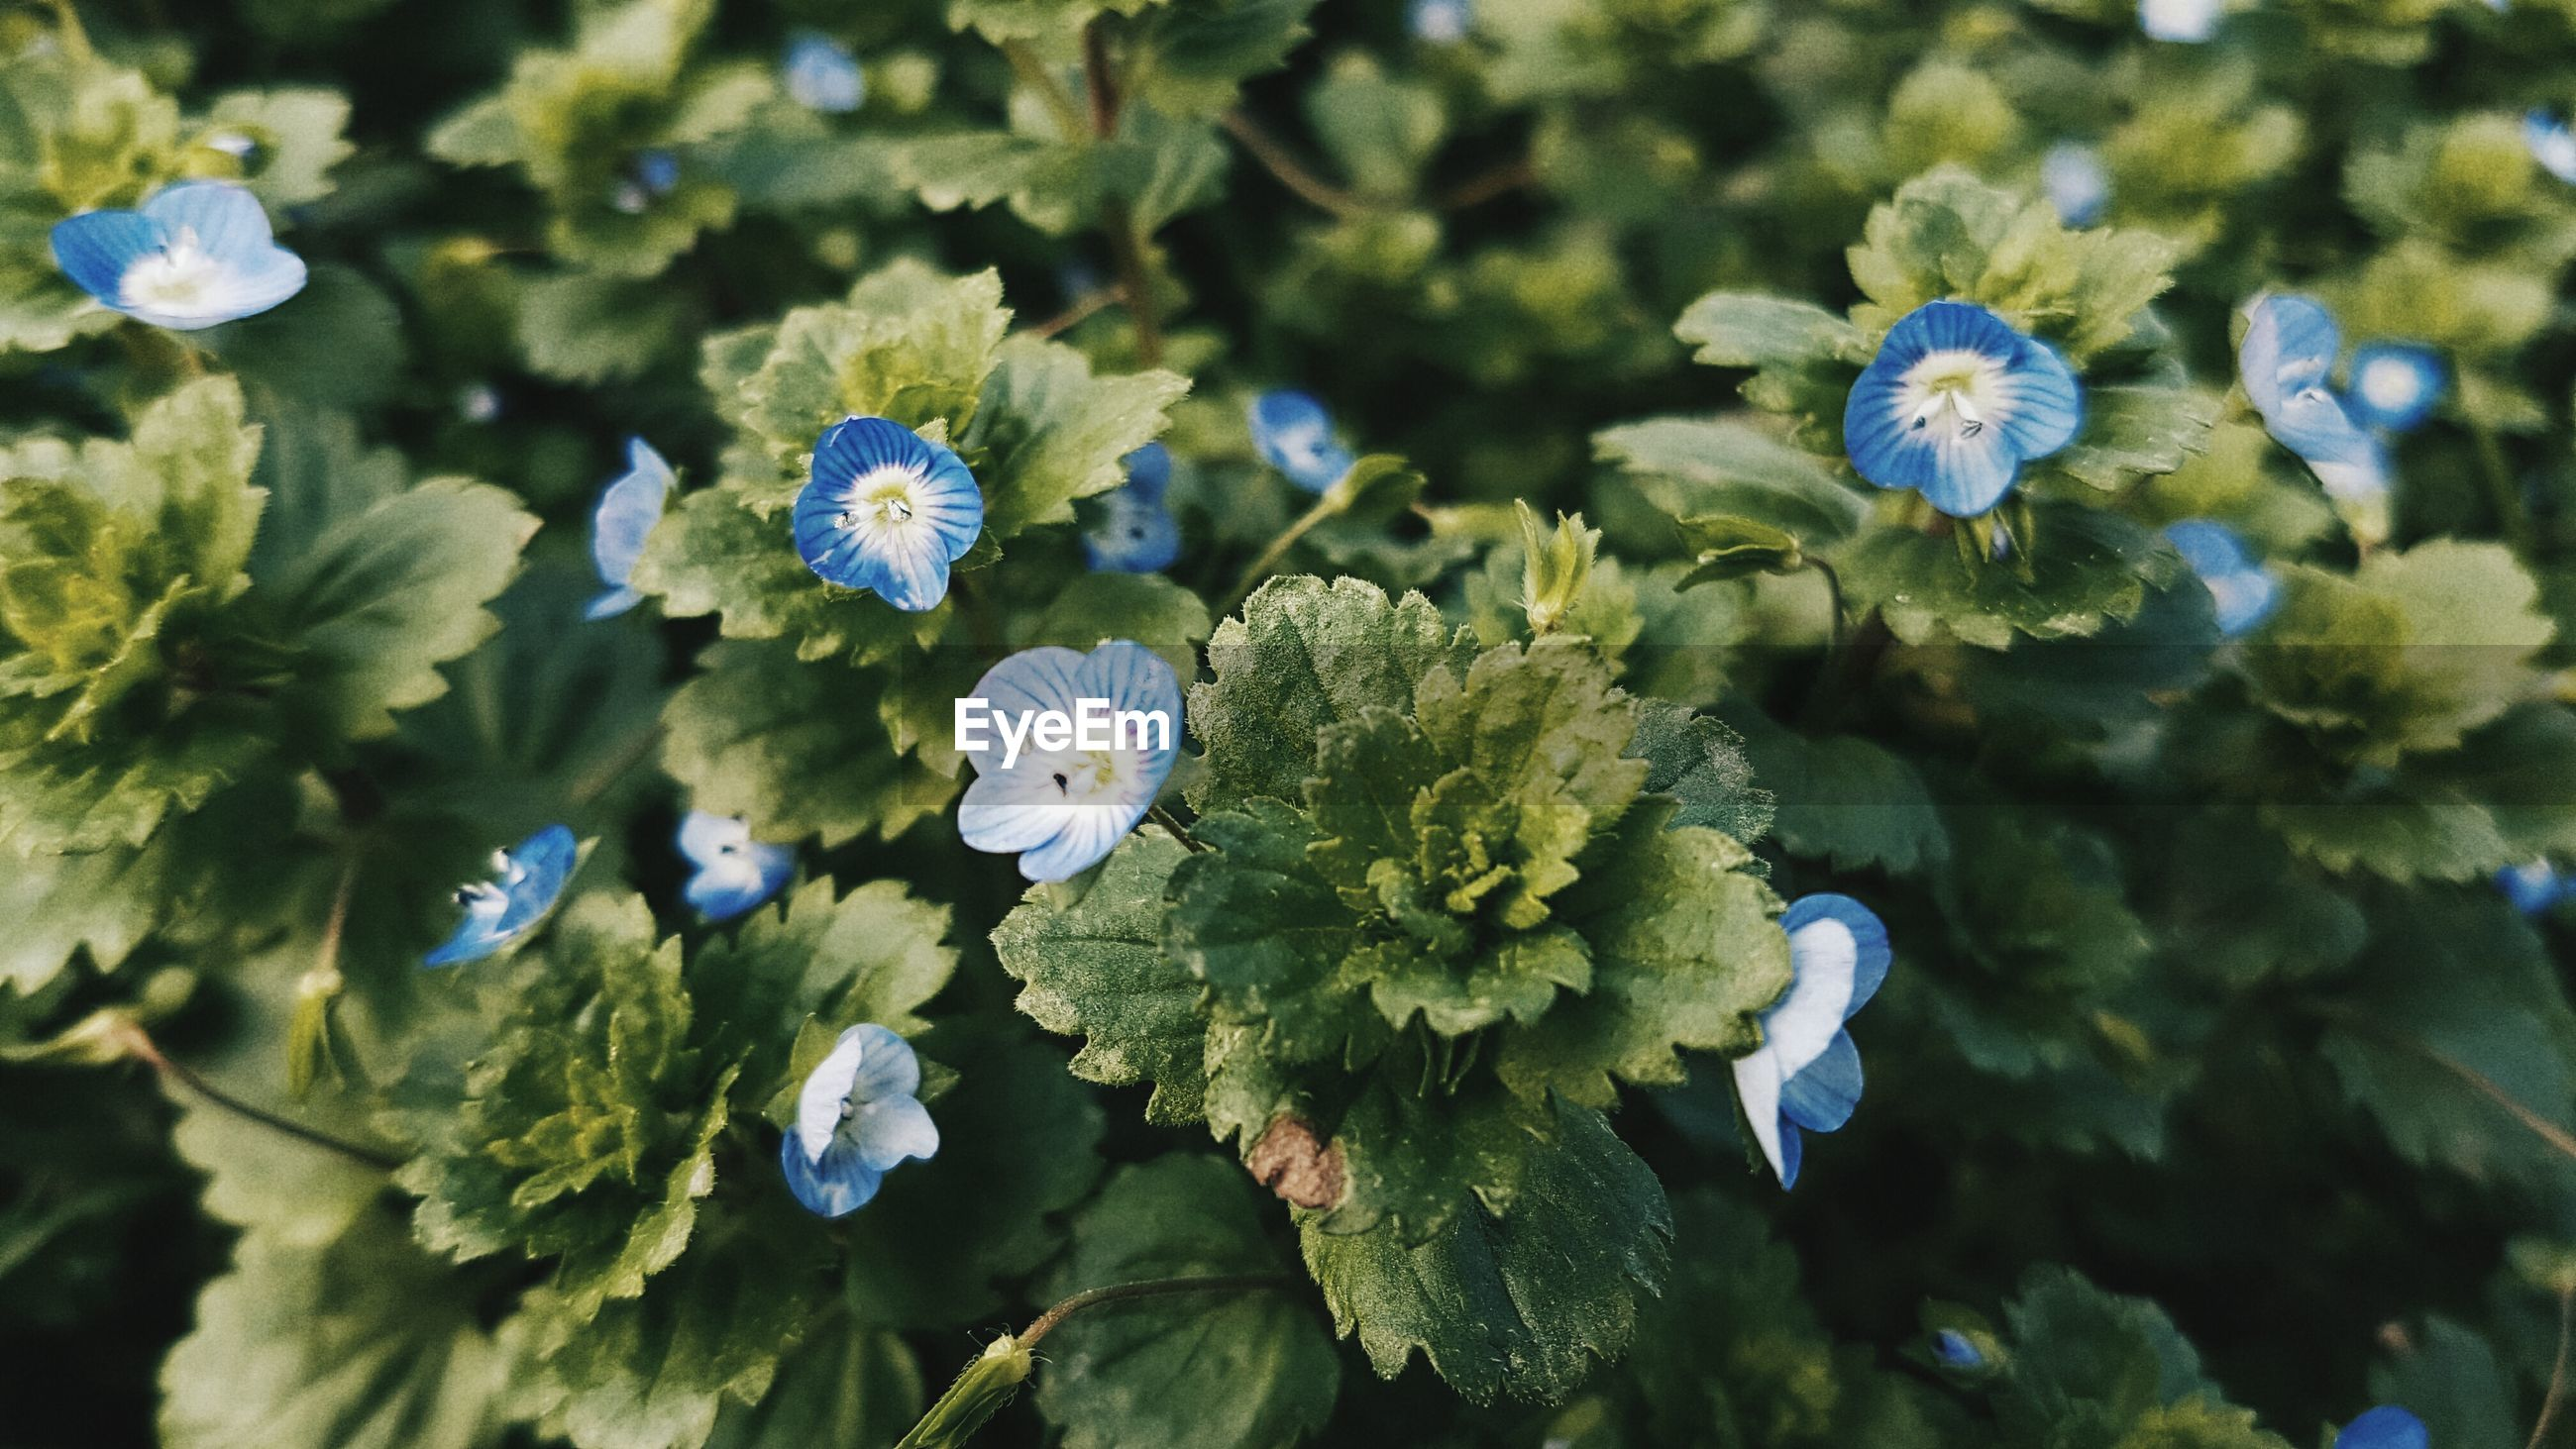 flower, nature, growth, plant, beauty in nature, green color, no people, fragility, close-up, outdoors, day, freshness, flower head